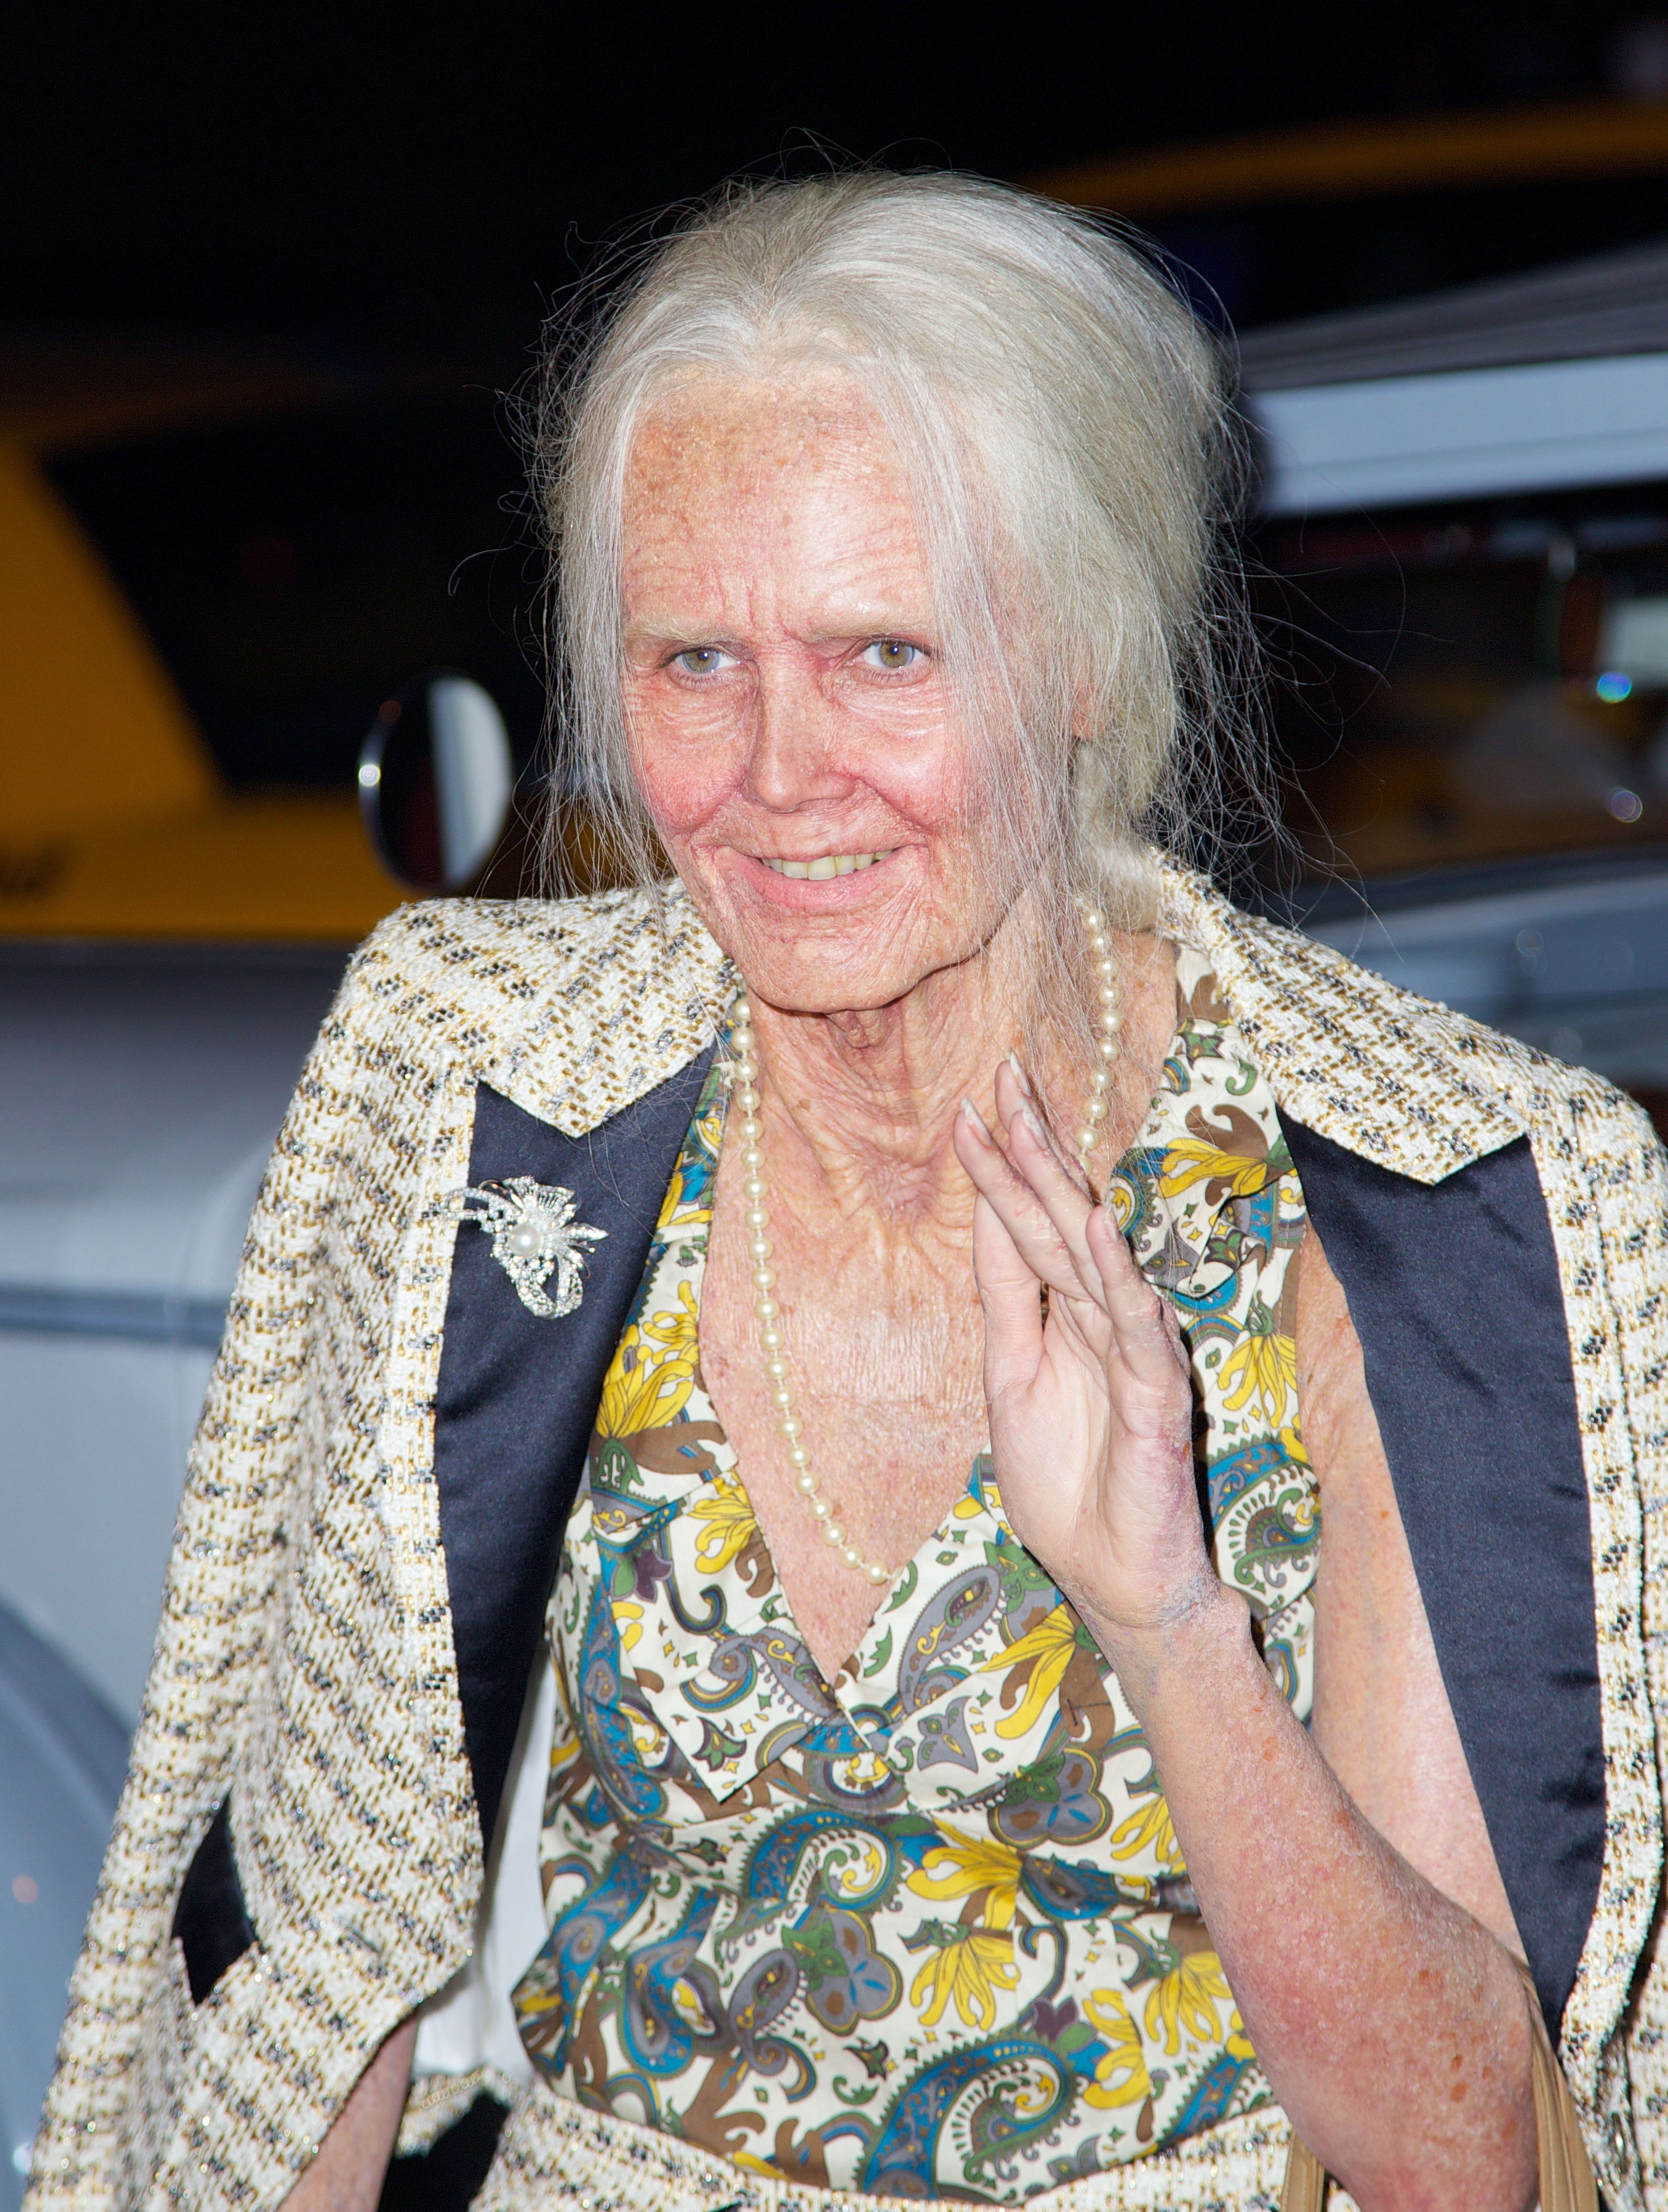 heidi klum dresses as elderly woman wins halloween the hollywood